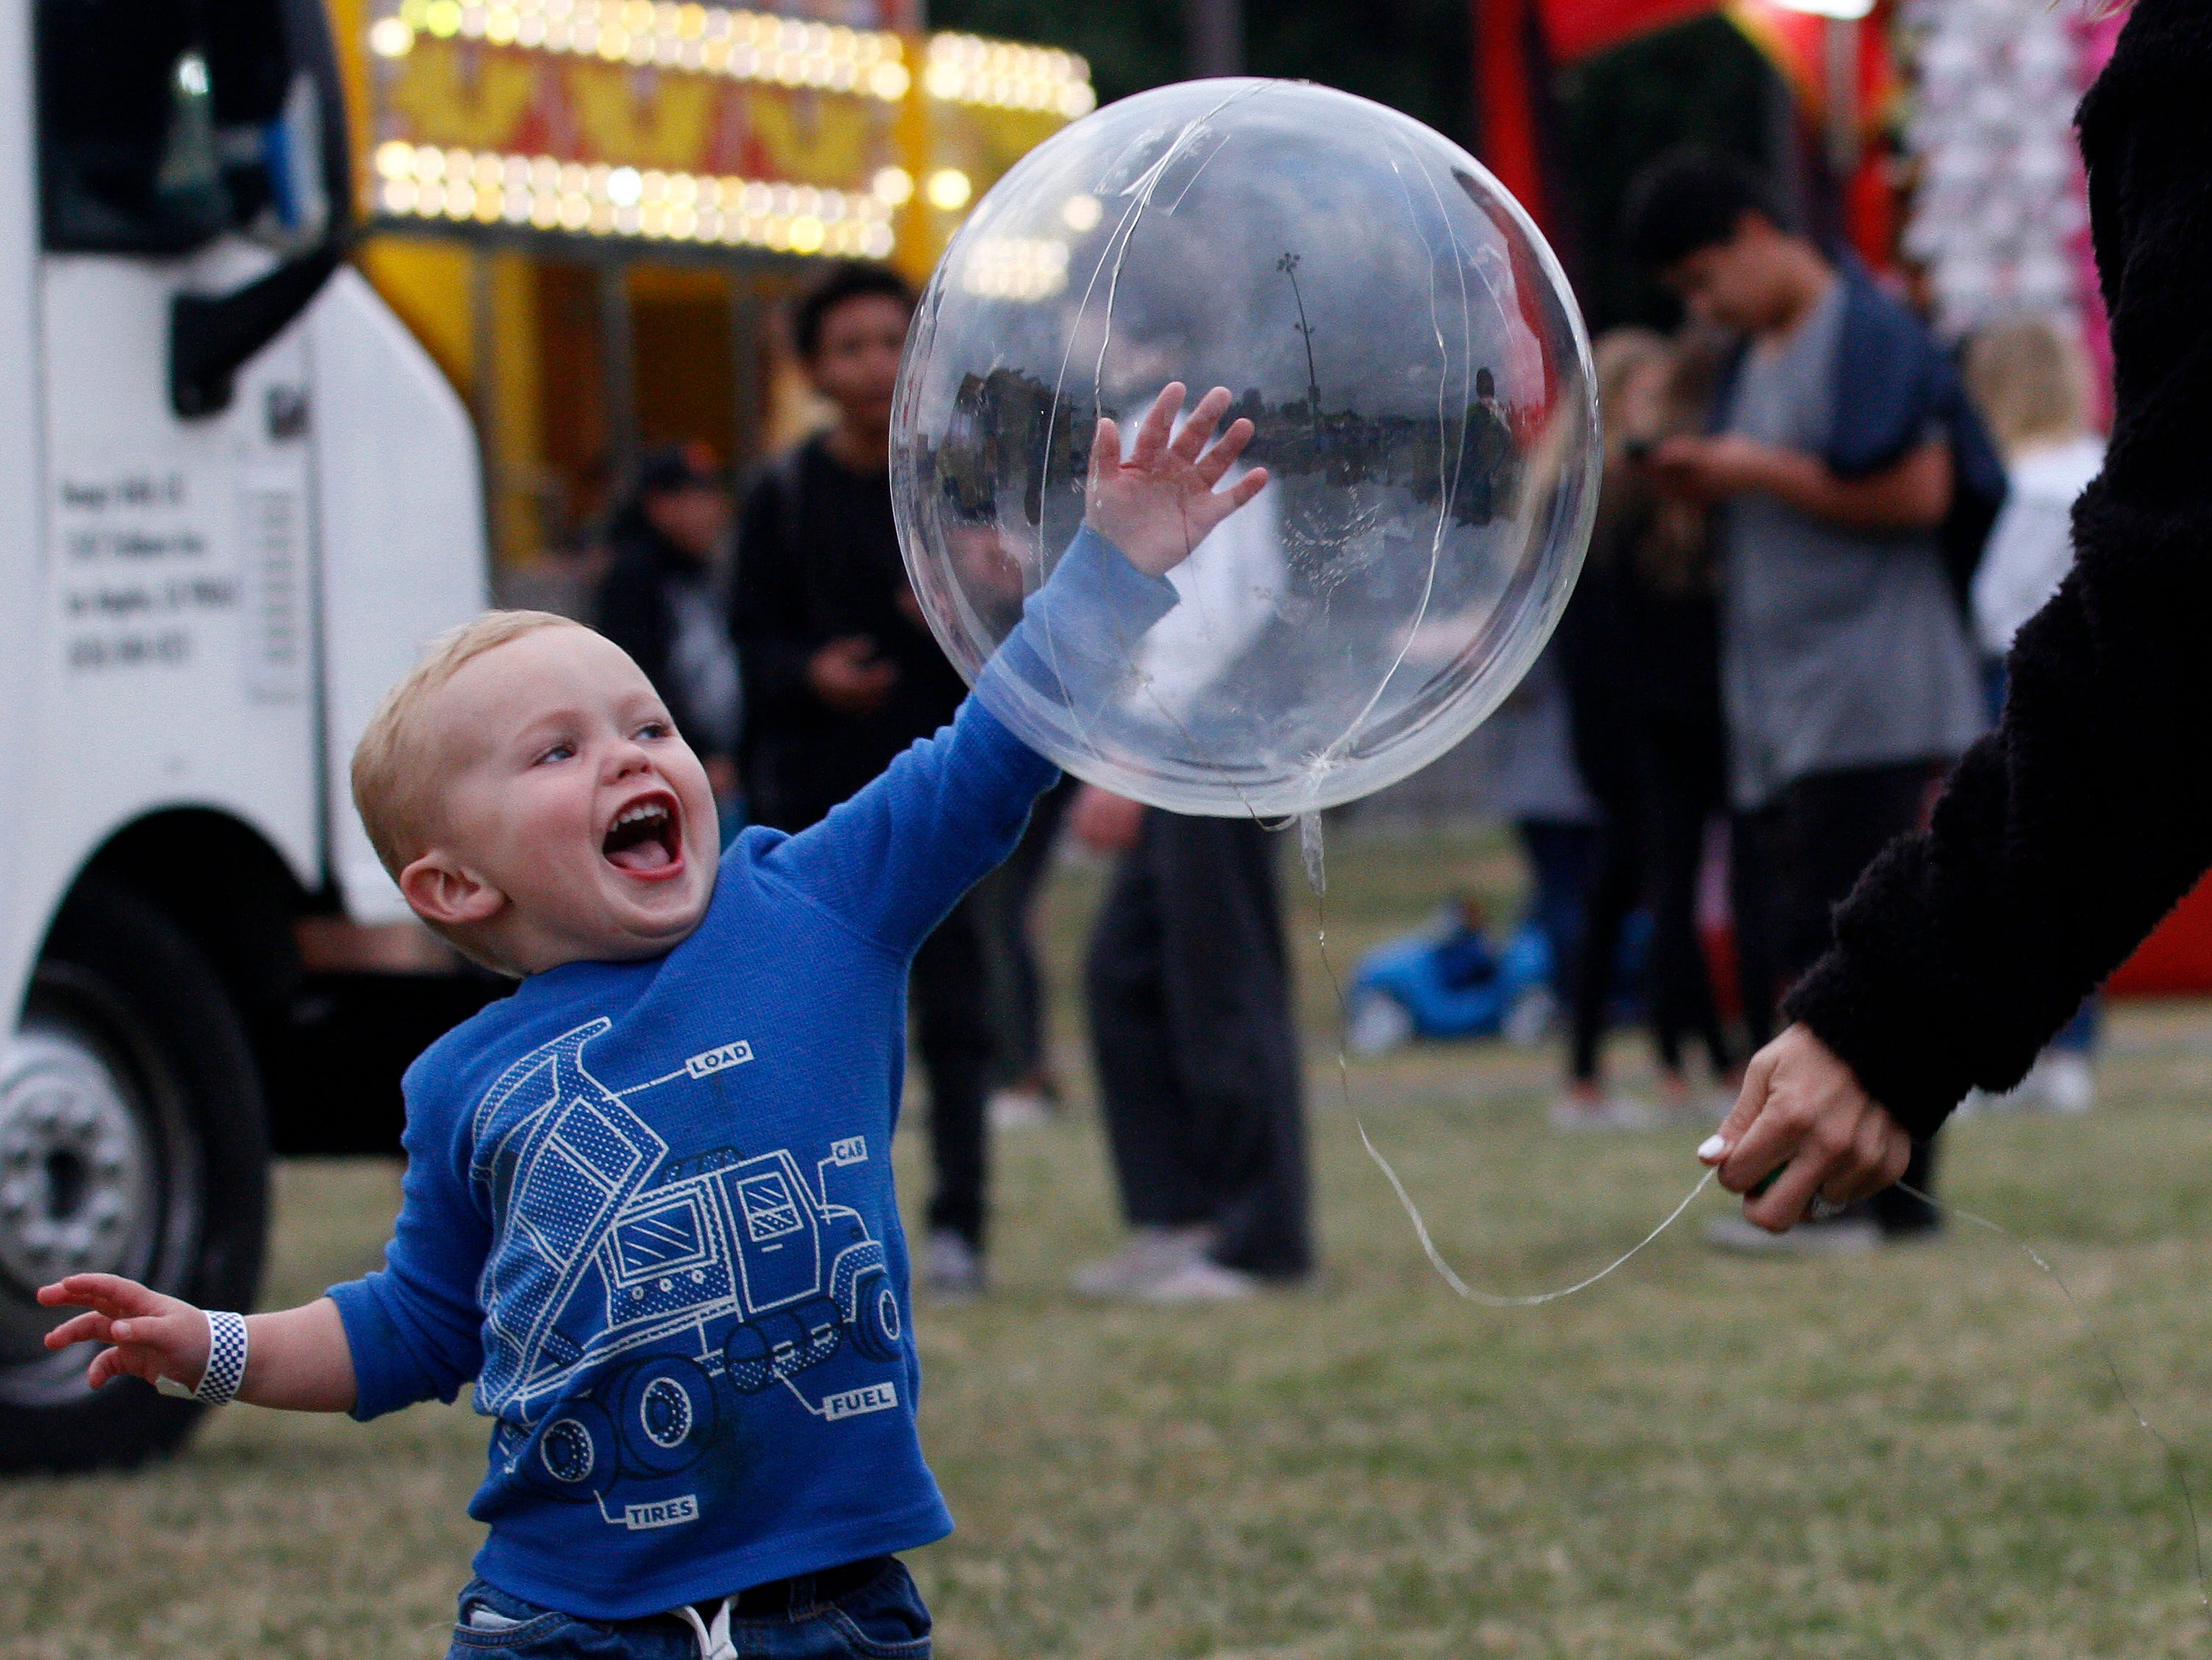 Grant Diegel tries to hit a balloon held by his mother, Alison Diegel, on Thursday during the opening night of the four-day Conejo Valley Days festival in Thousand Oaks.